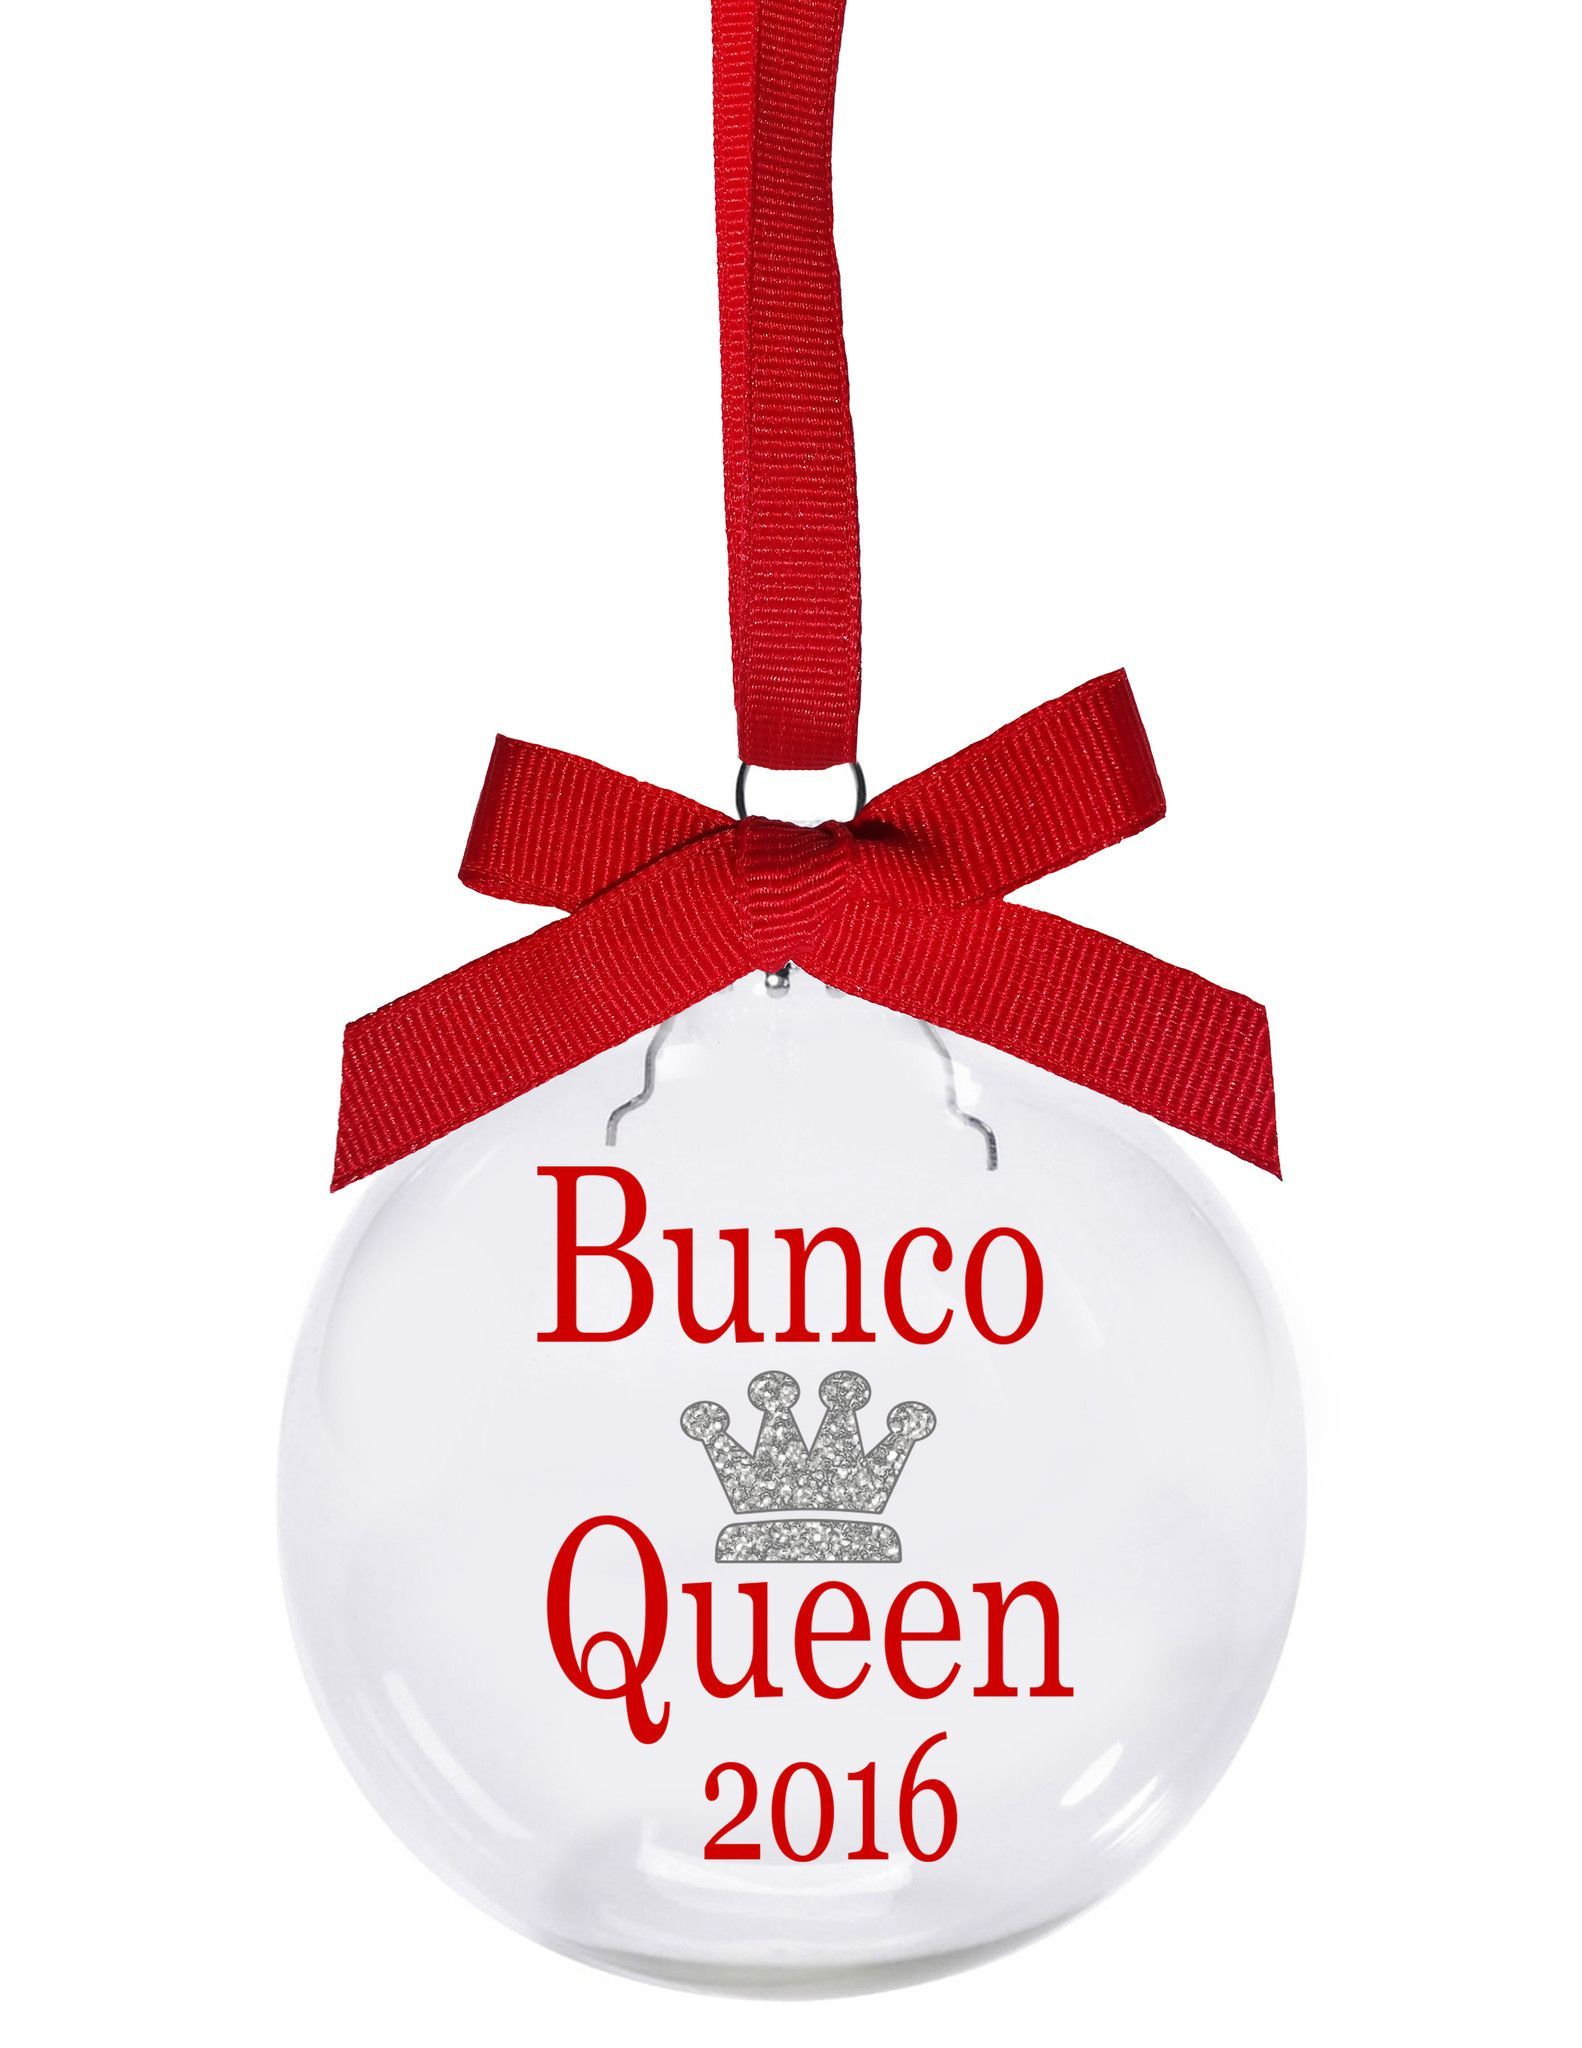 Bunco Christmas Party Ideas Part - 20: Bunco Queen 2016 Bunco Christmas Ornament